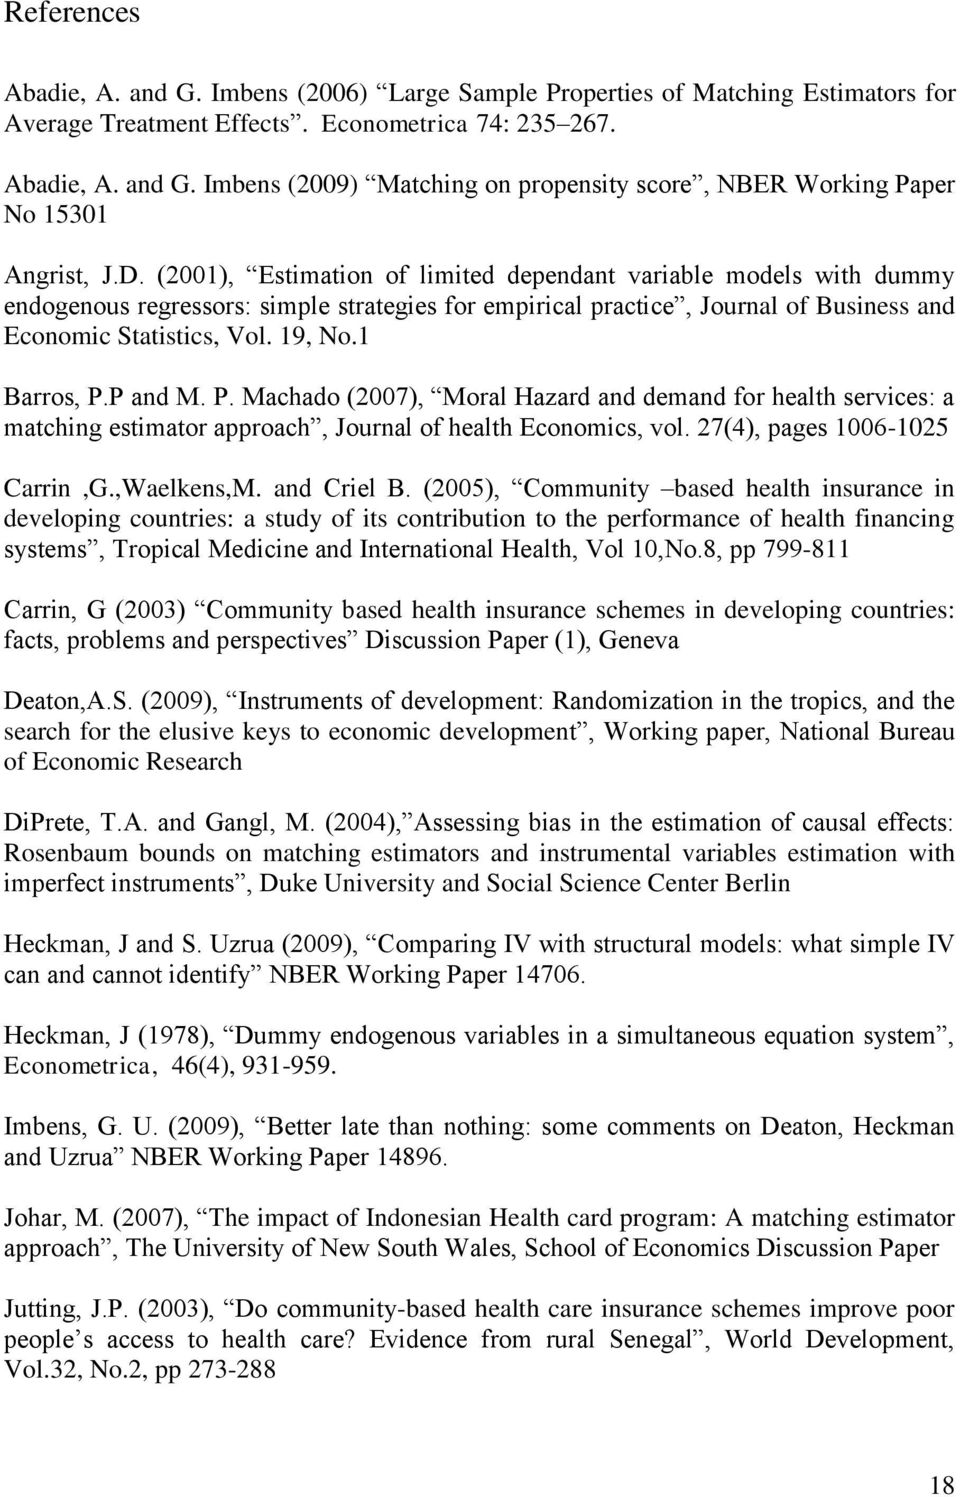 1 Barros, P.P and M. P. Machado (2007), Moral Hazard and demand for health services: a matching estimator approach, Journal of health Economics, vol. 27(4), pages 1006-1025 Carrin,G.,Waelkens,M.